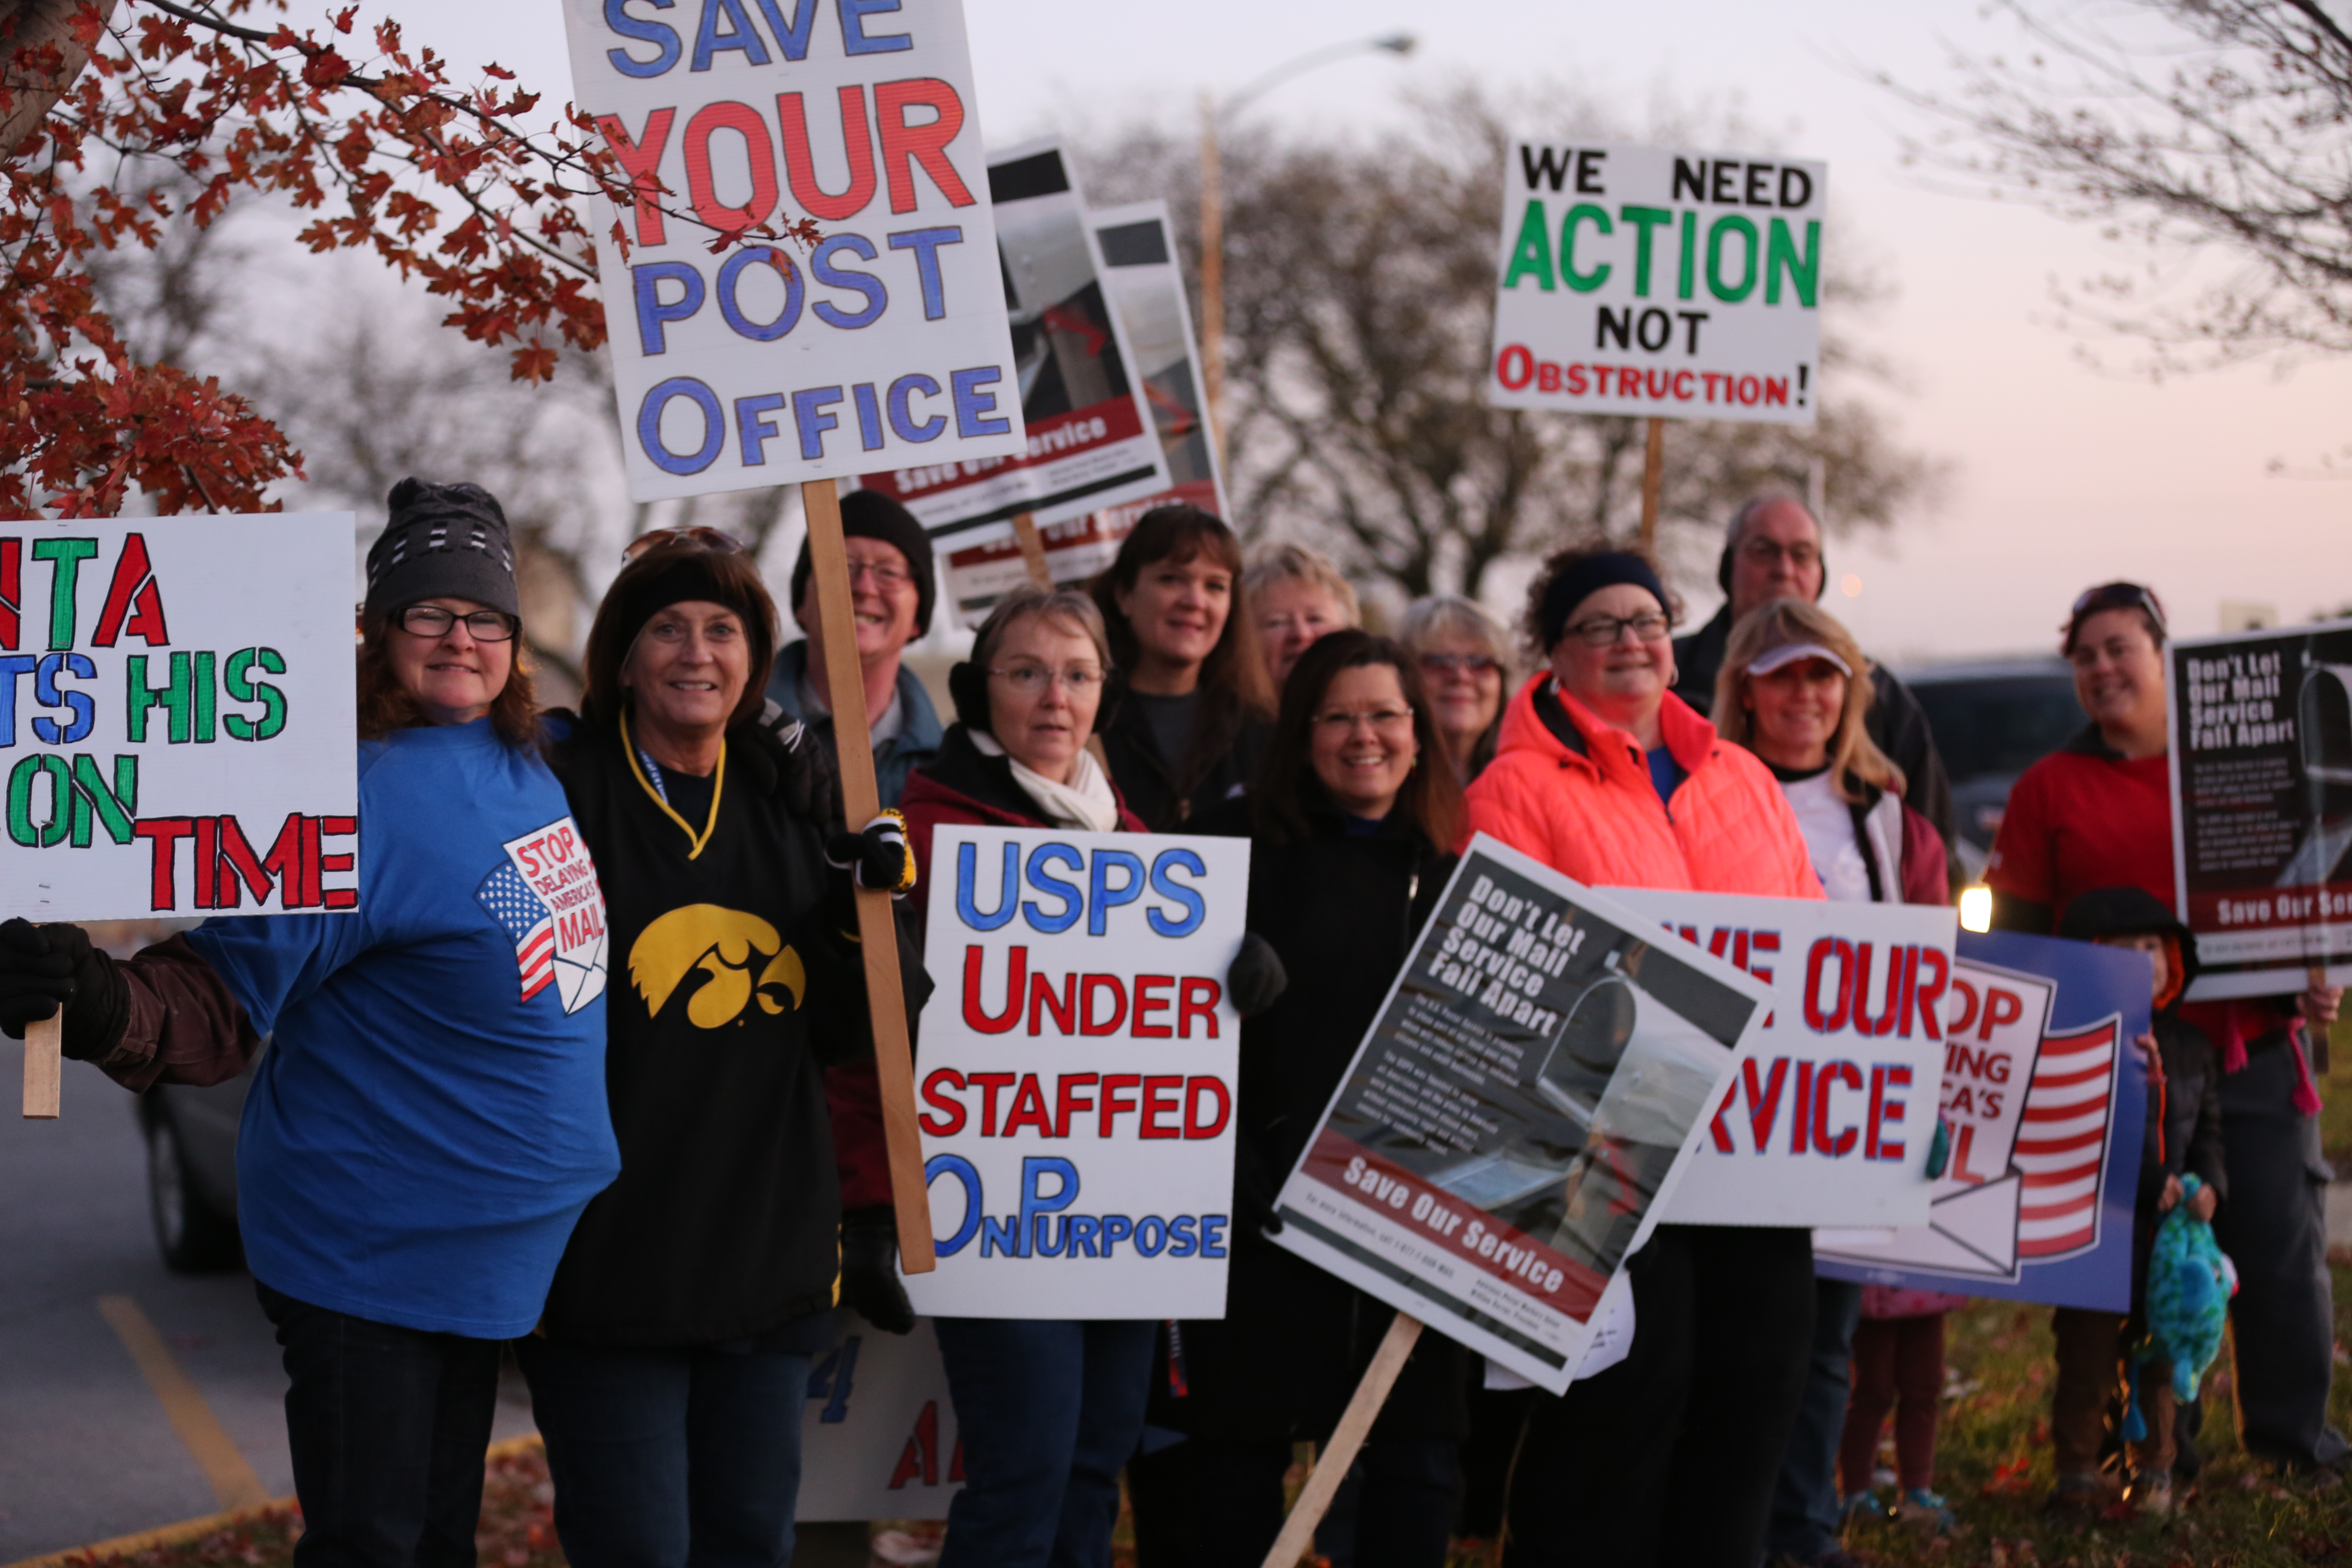 Protest News: Protests Against Job, Service Cuts Continue